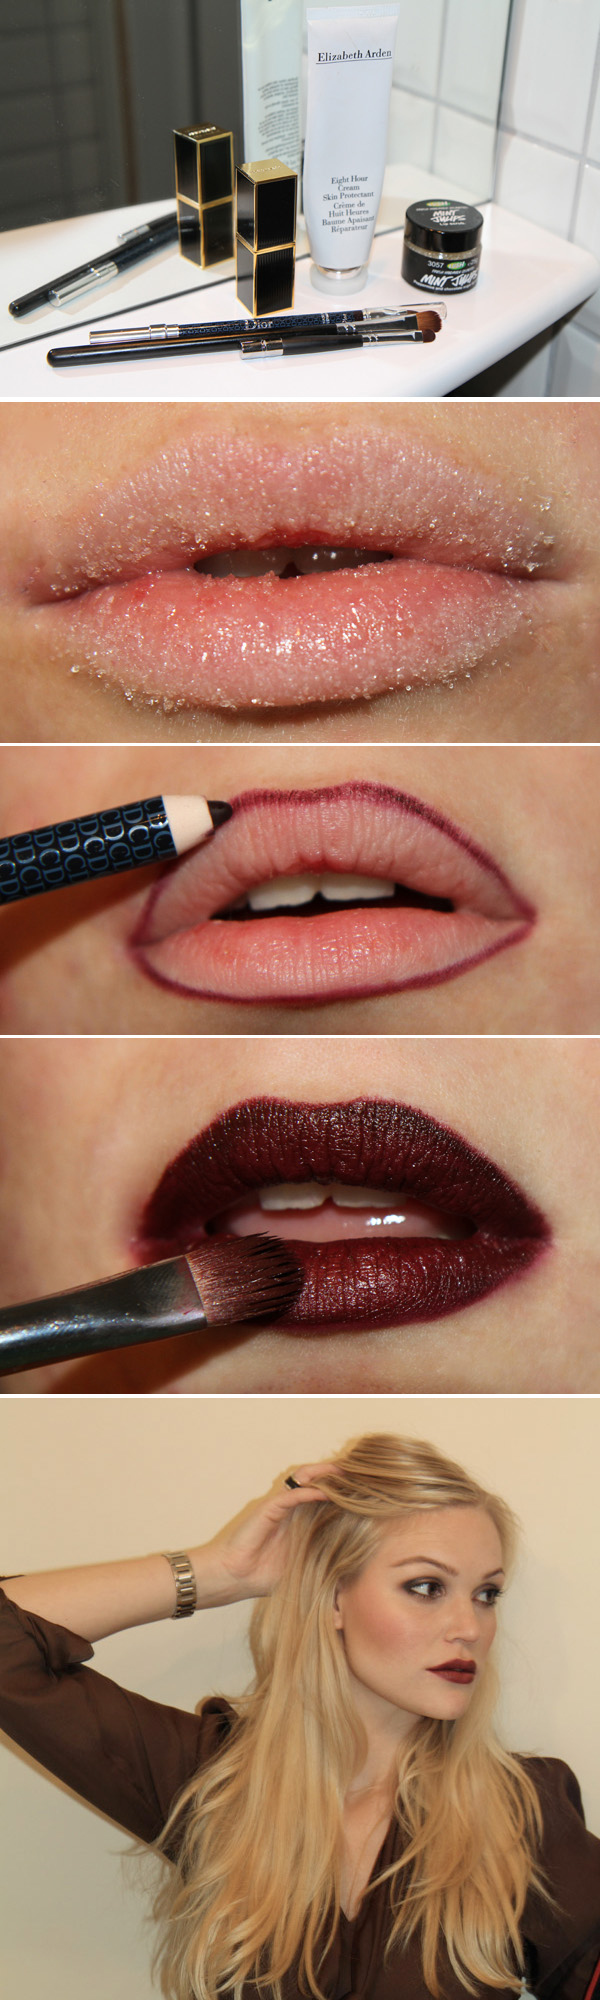 Mini-lesson on applying dark lipstick Makeup Tutorial for Glamorous and Dramatic Holiday Looks